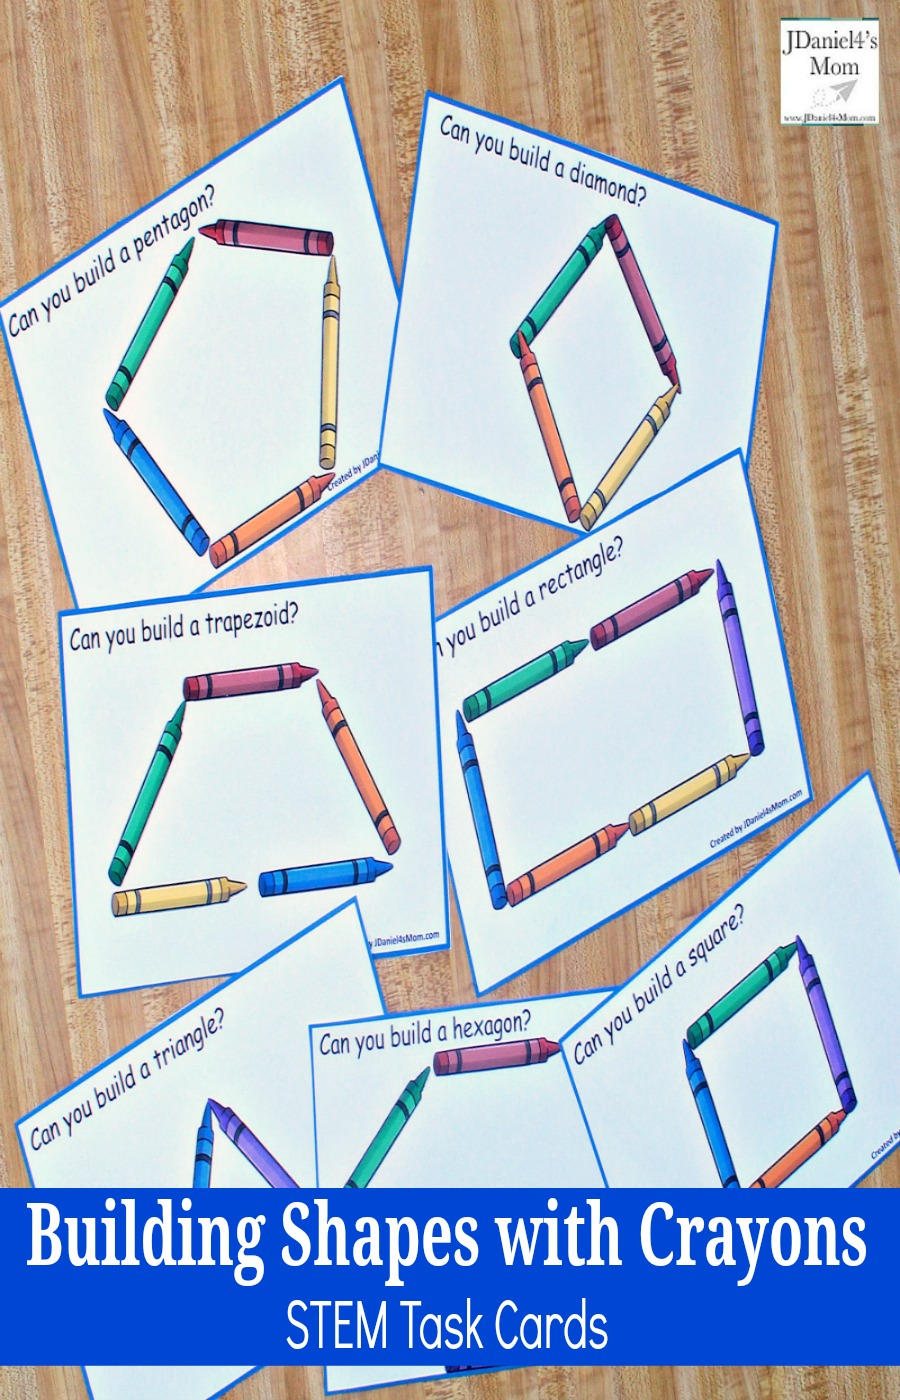 image about Free Printable Task Cards titled Creating Designs with Crayons STEM Process Playing cards - JDaniel4s Mother